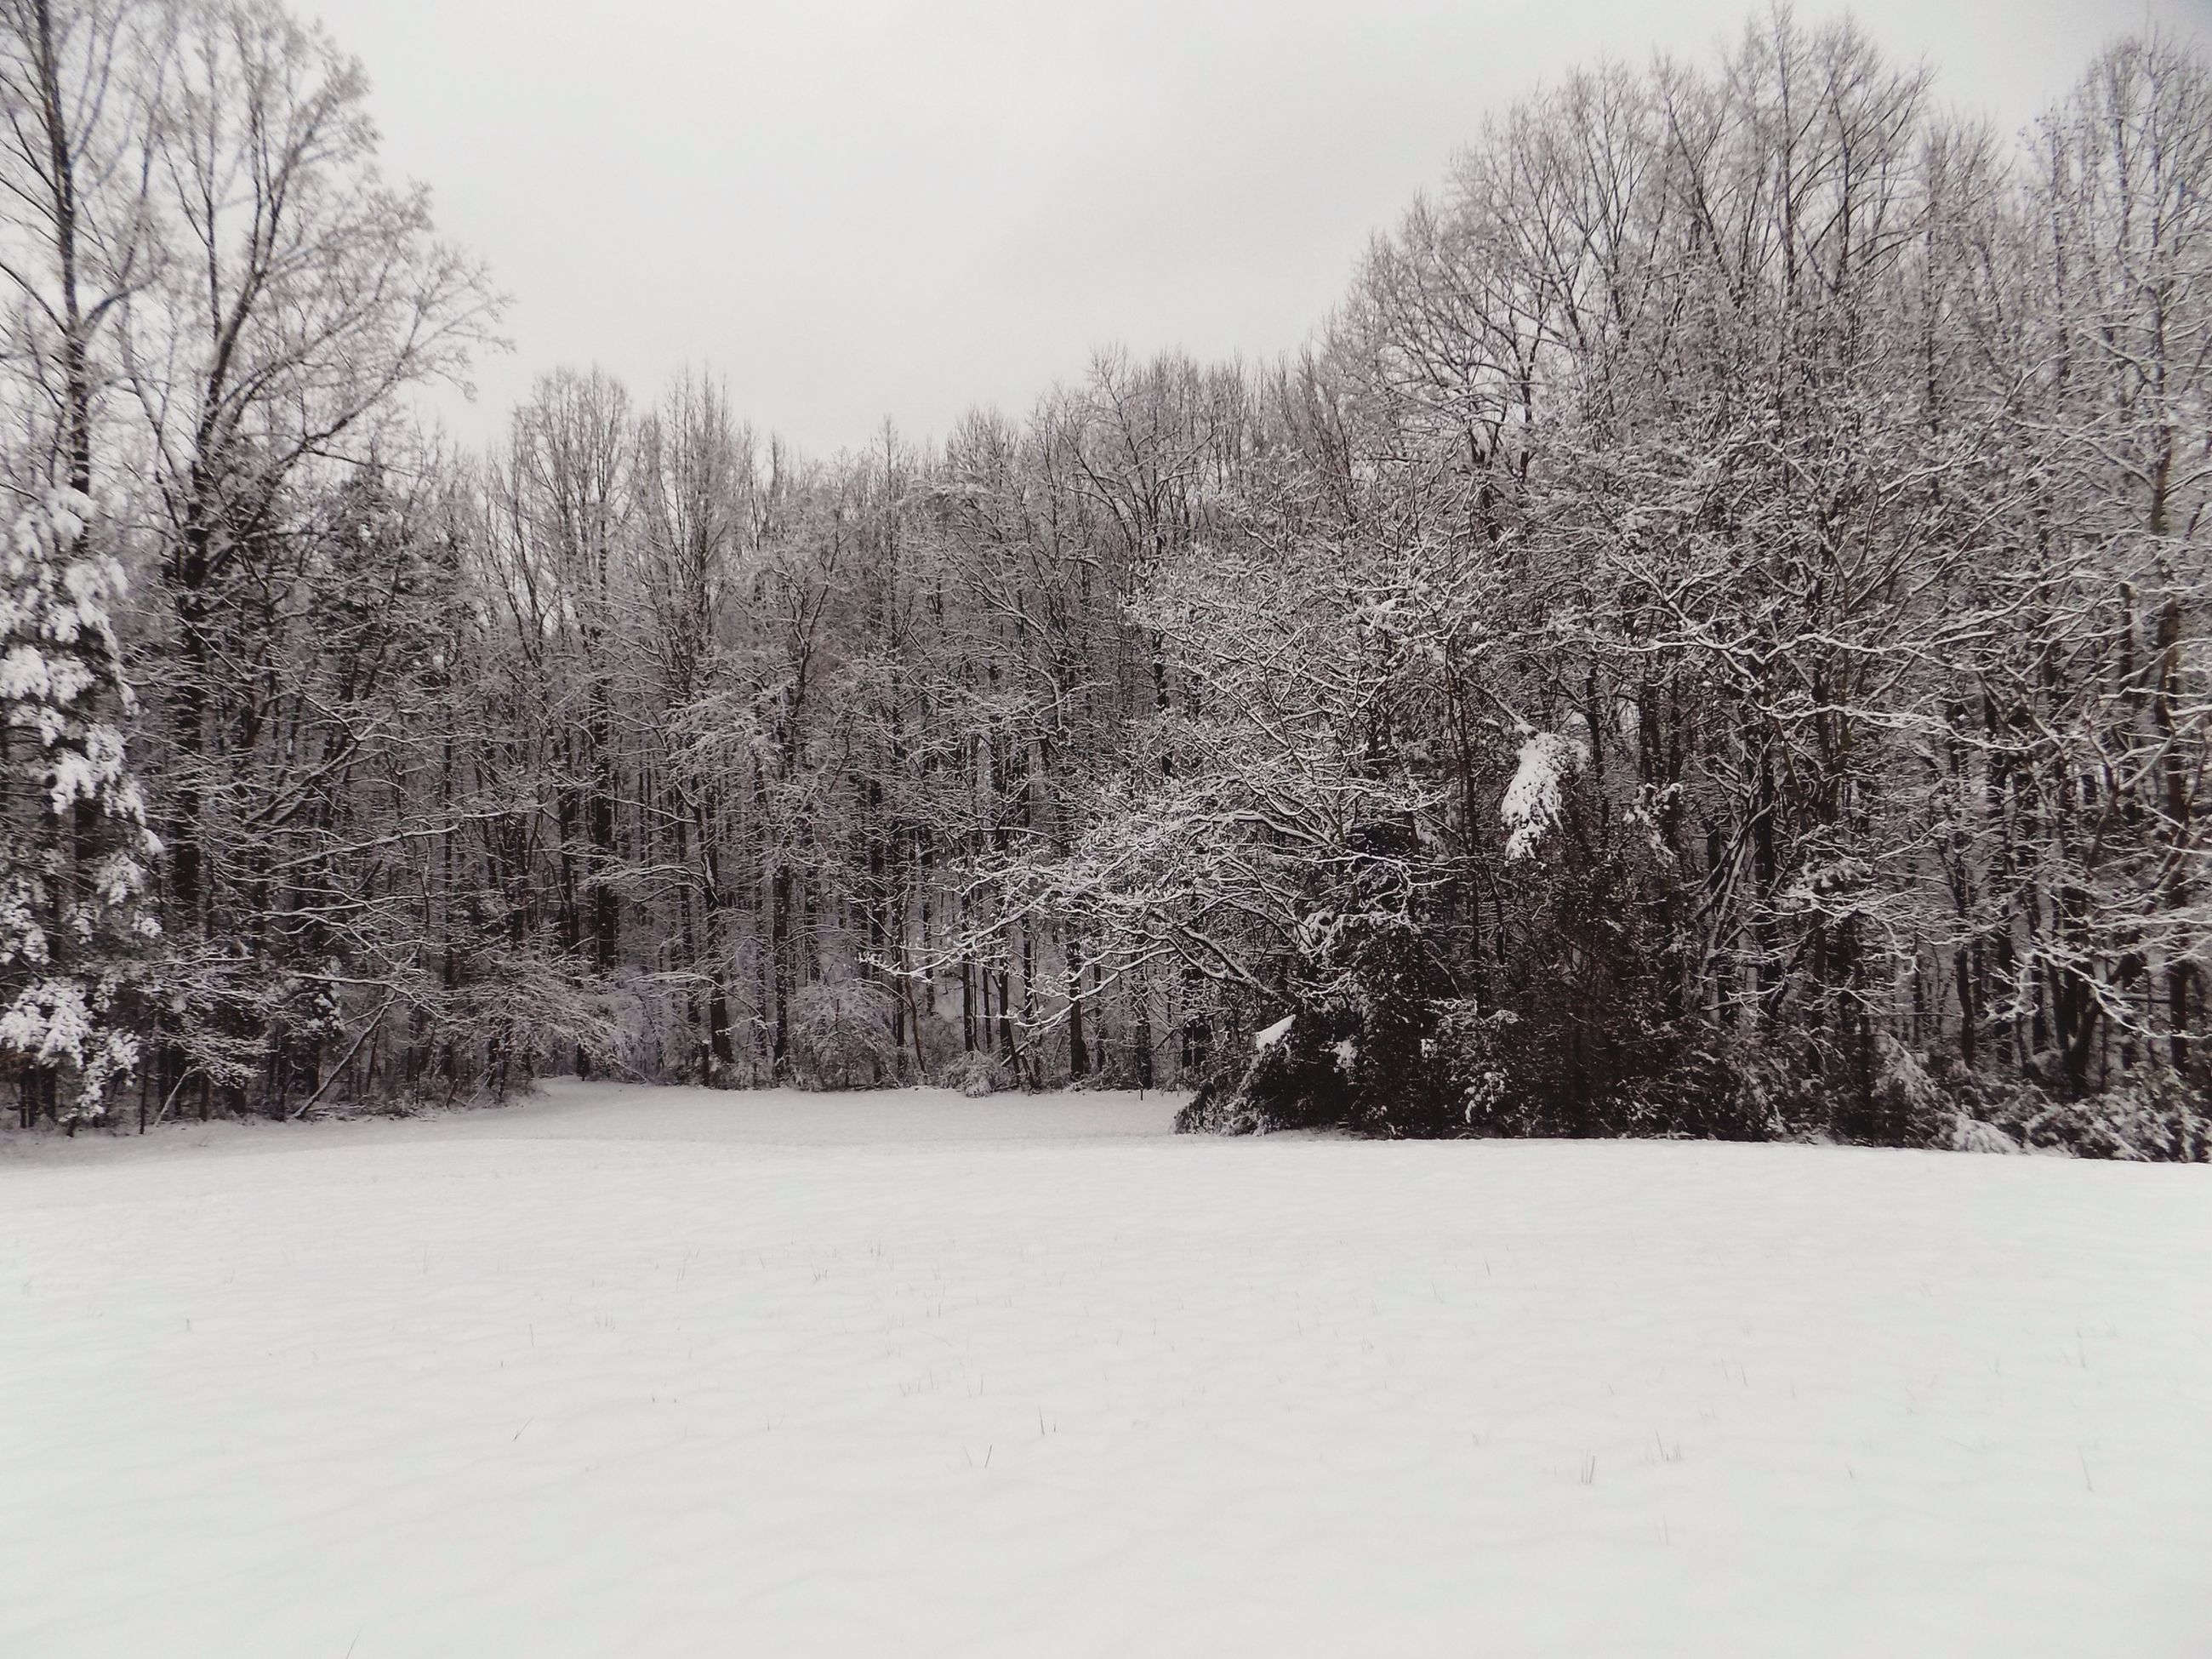 tree, snow, winter, cold temperature, tranquility, tranquil scene, beauty in nature, nature, scenics, season, landscape, growth, bare tree, forest, branch, clear sky, non-urban scene, sky, weather, white color